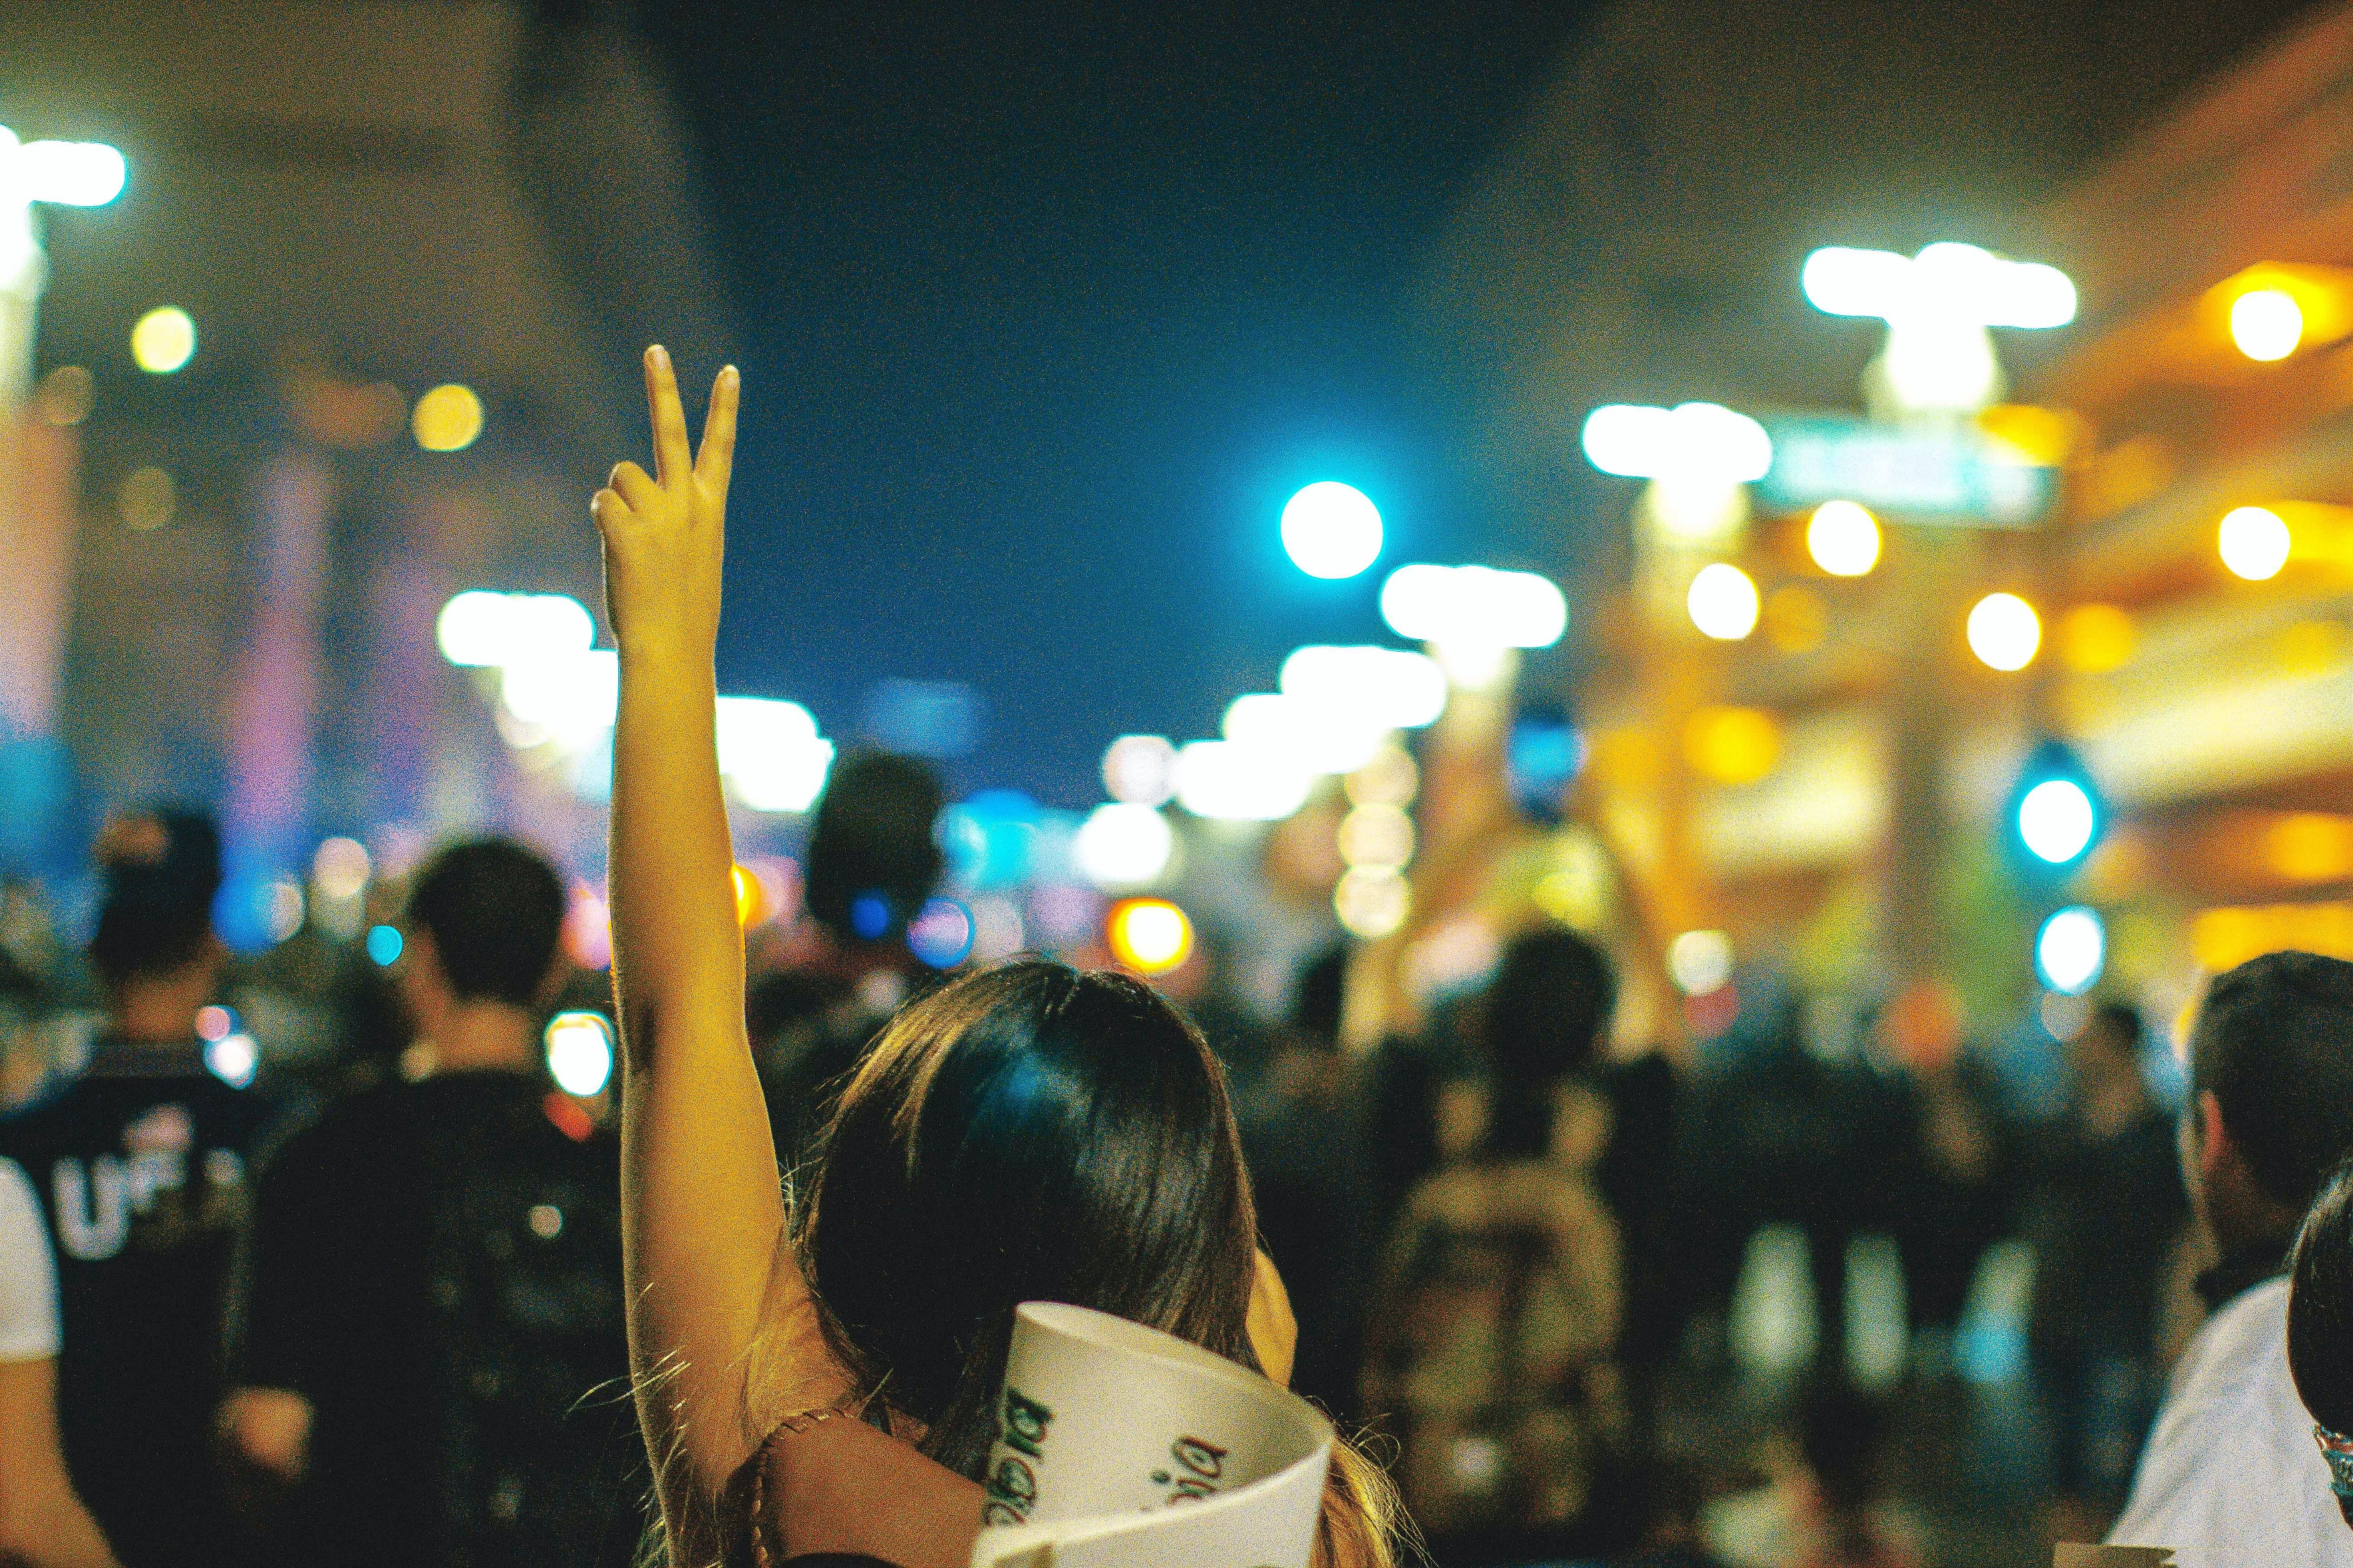 Image of a crowd with someone holding up a peace sign.